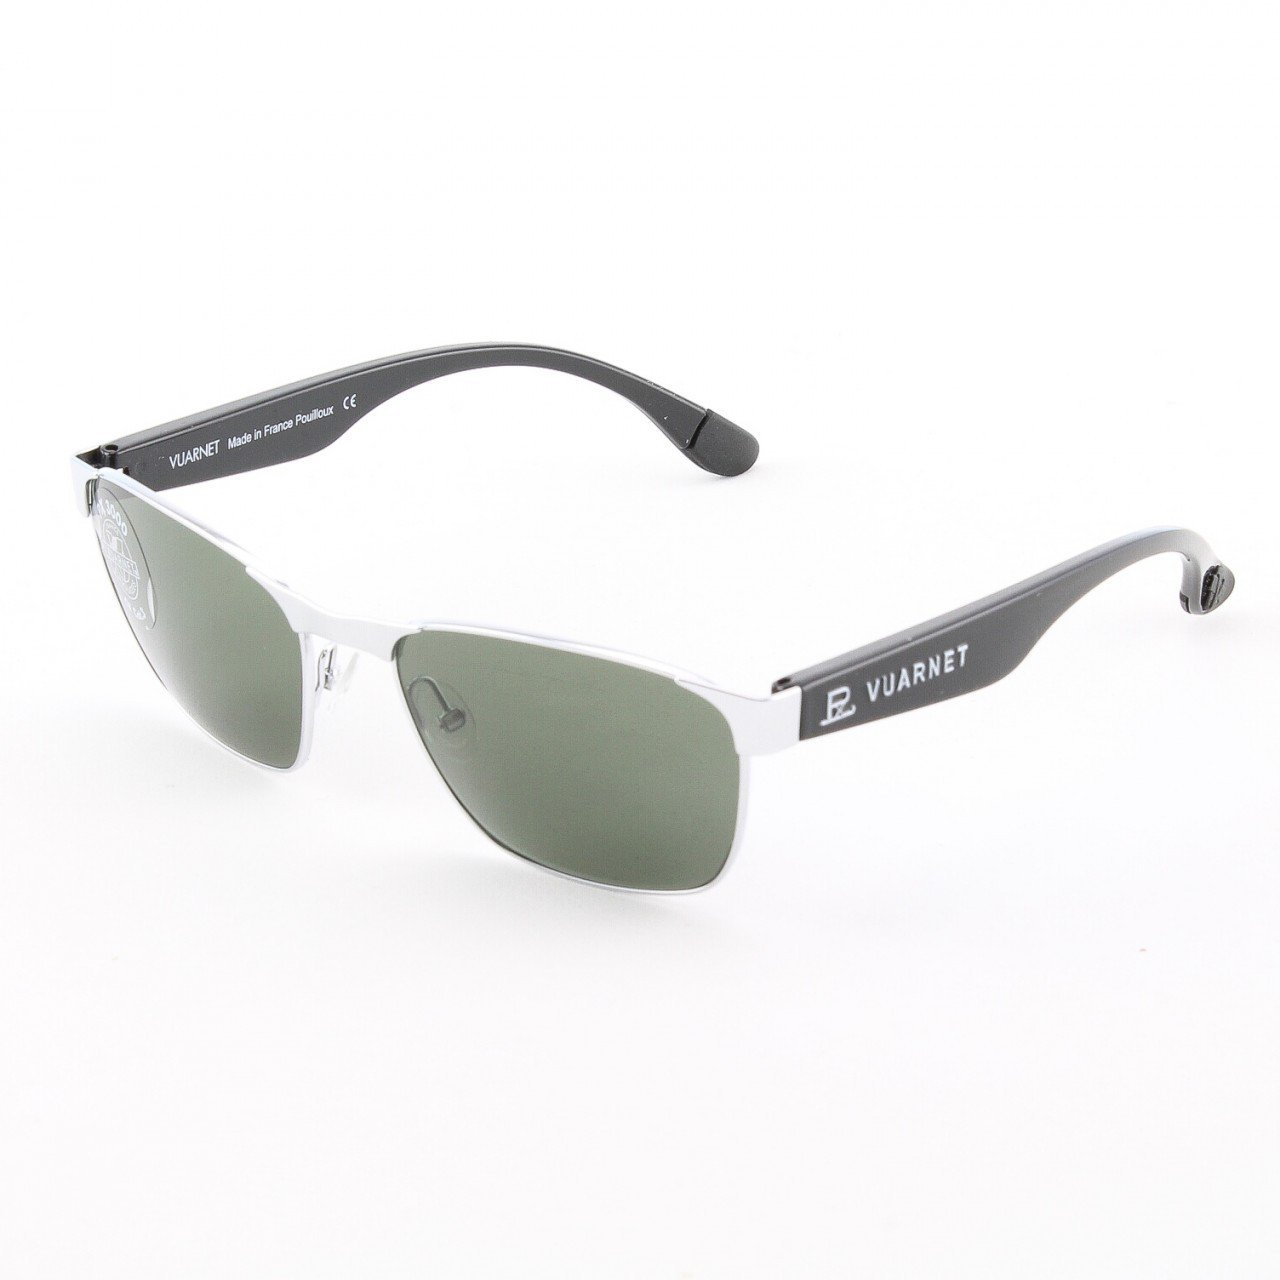 Vuarnet VL 1055 Sunglasses Col. 0003 1121 SIlver and Black with Grey PX3000 Lenses